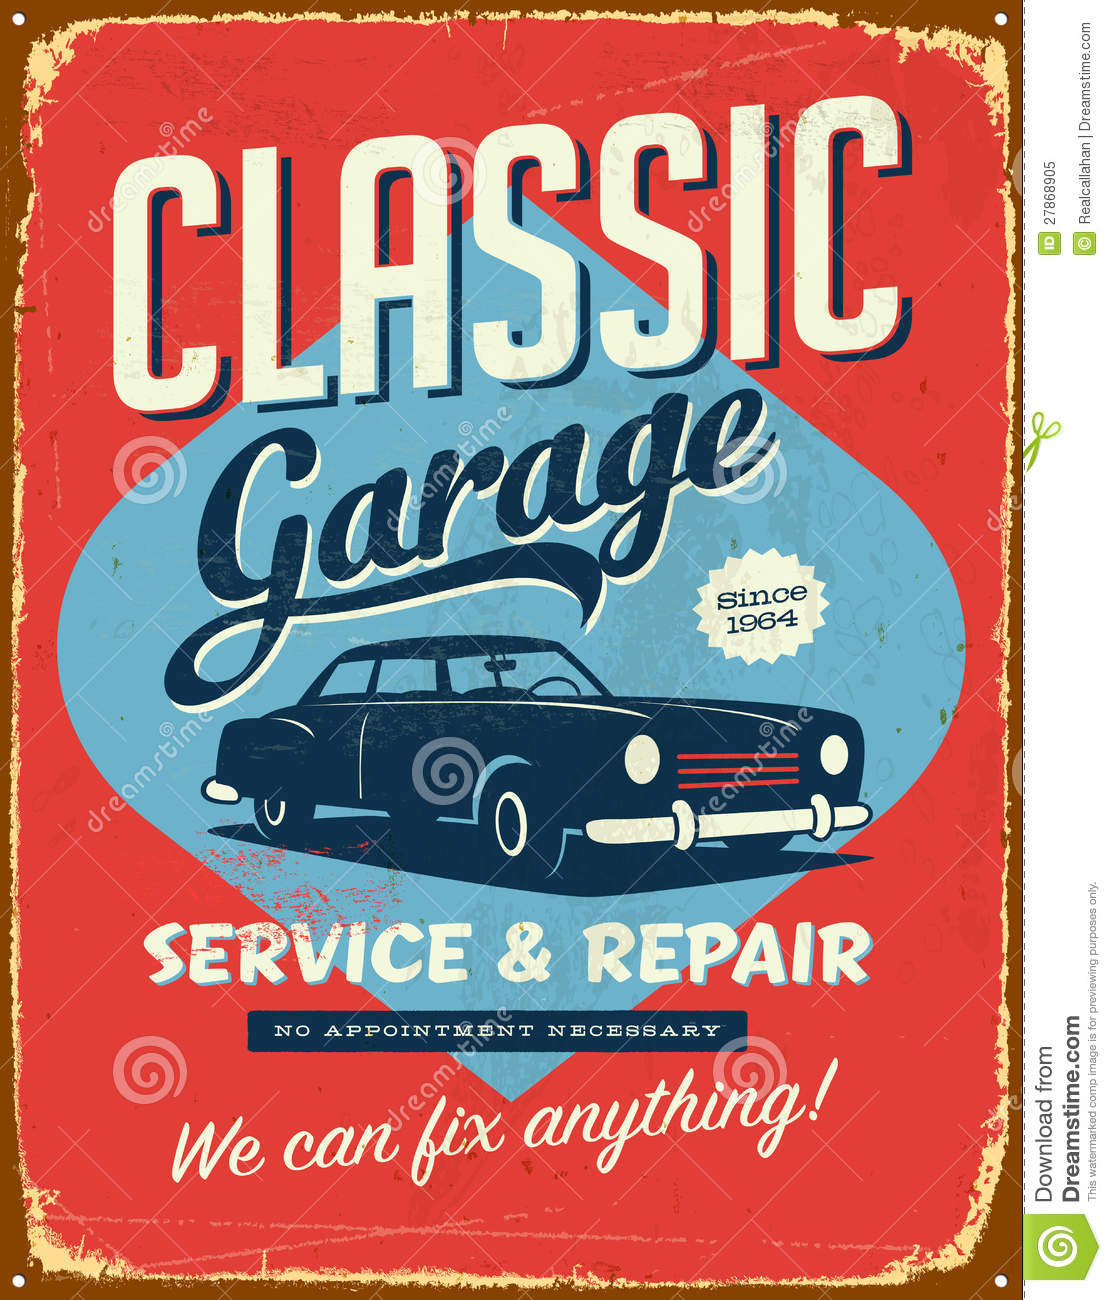 Vintage Tin Sign Automotive : Vintage metal sign royalty free stock photo image